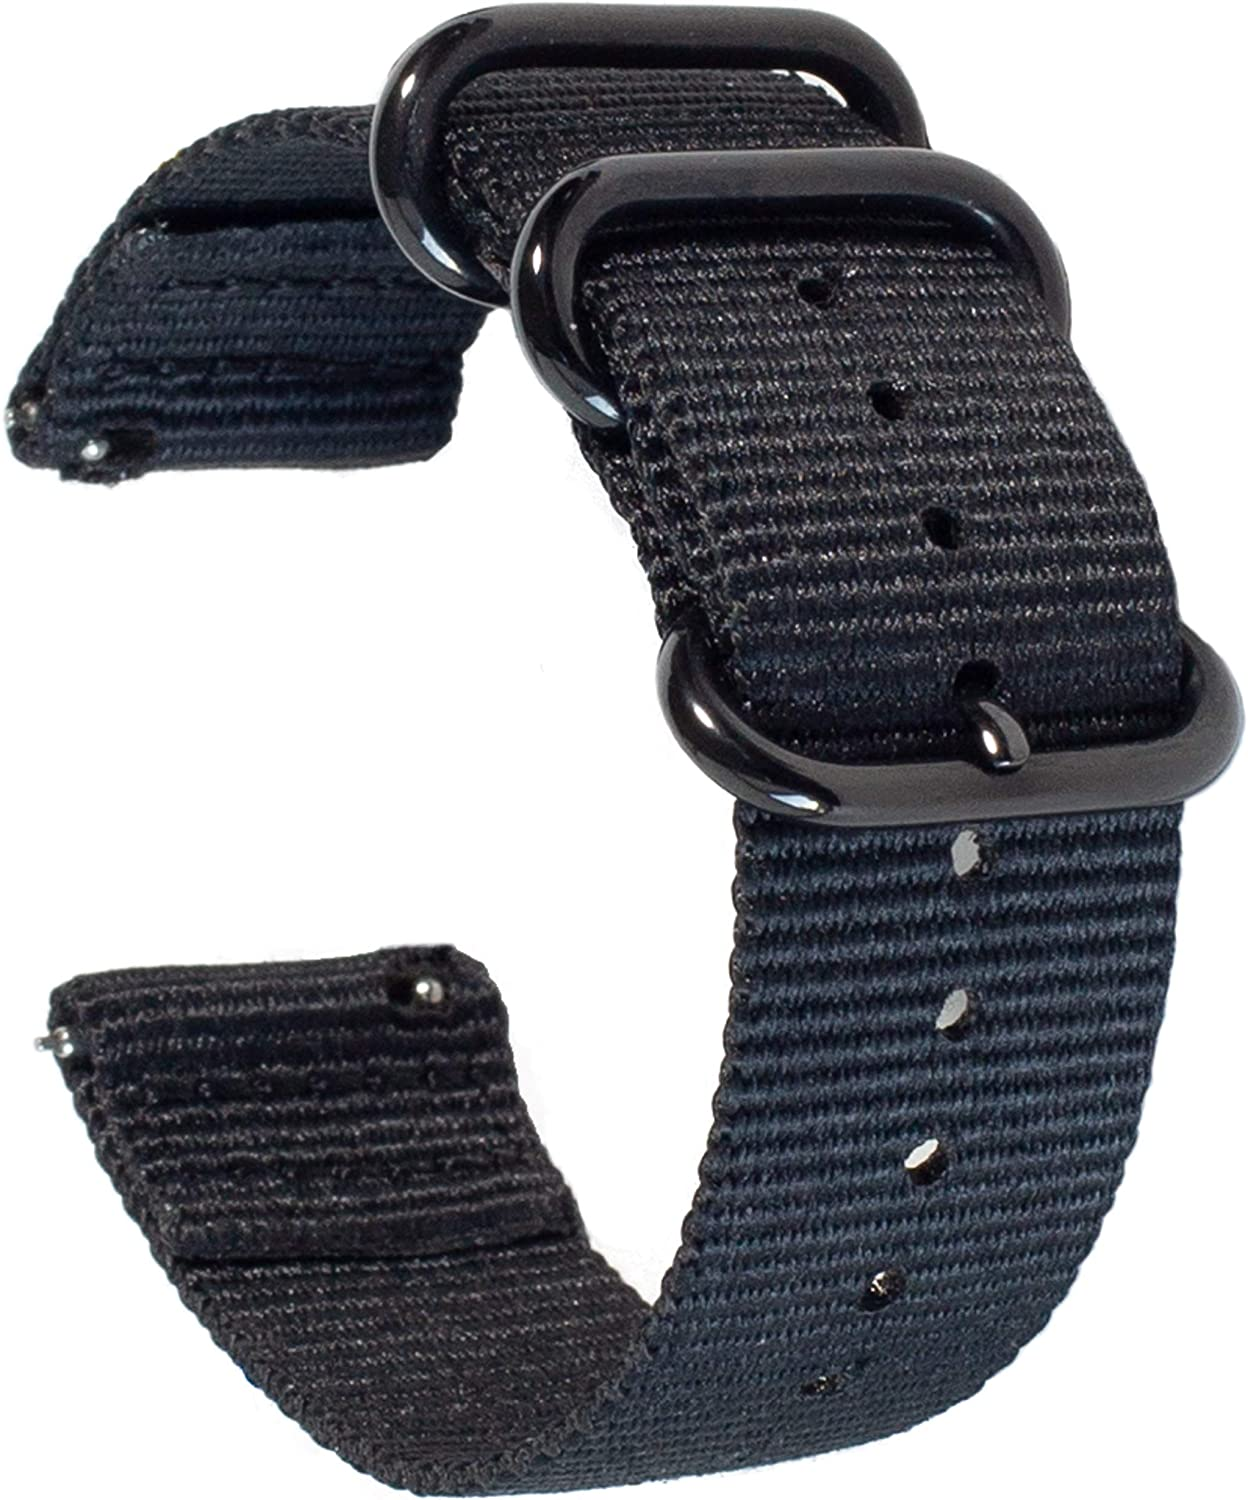 Carterjett Quick Release Watch Band 22mm - Black Nylon Military-Style Straps Compatible Samsung Gear Galaxy S3 Classic Frontier Moto Pebble Fossil Smartwatch Traditional 22 mm (S/M Black)